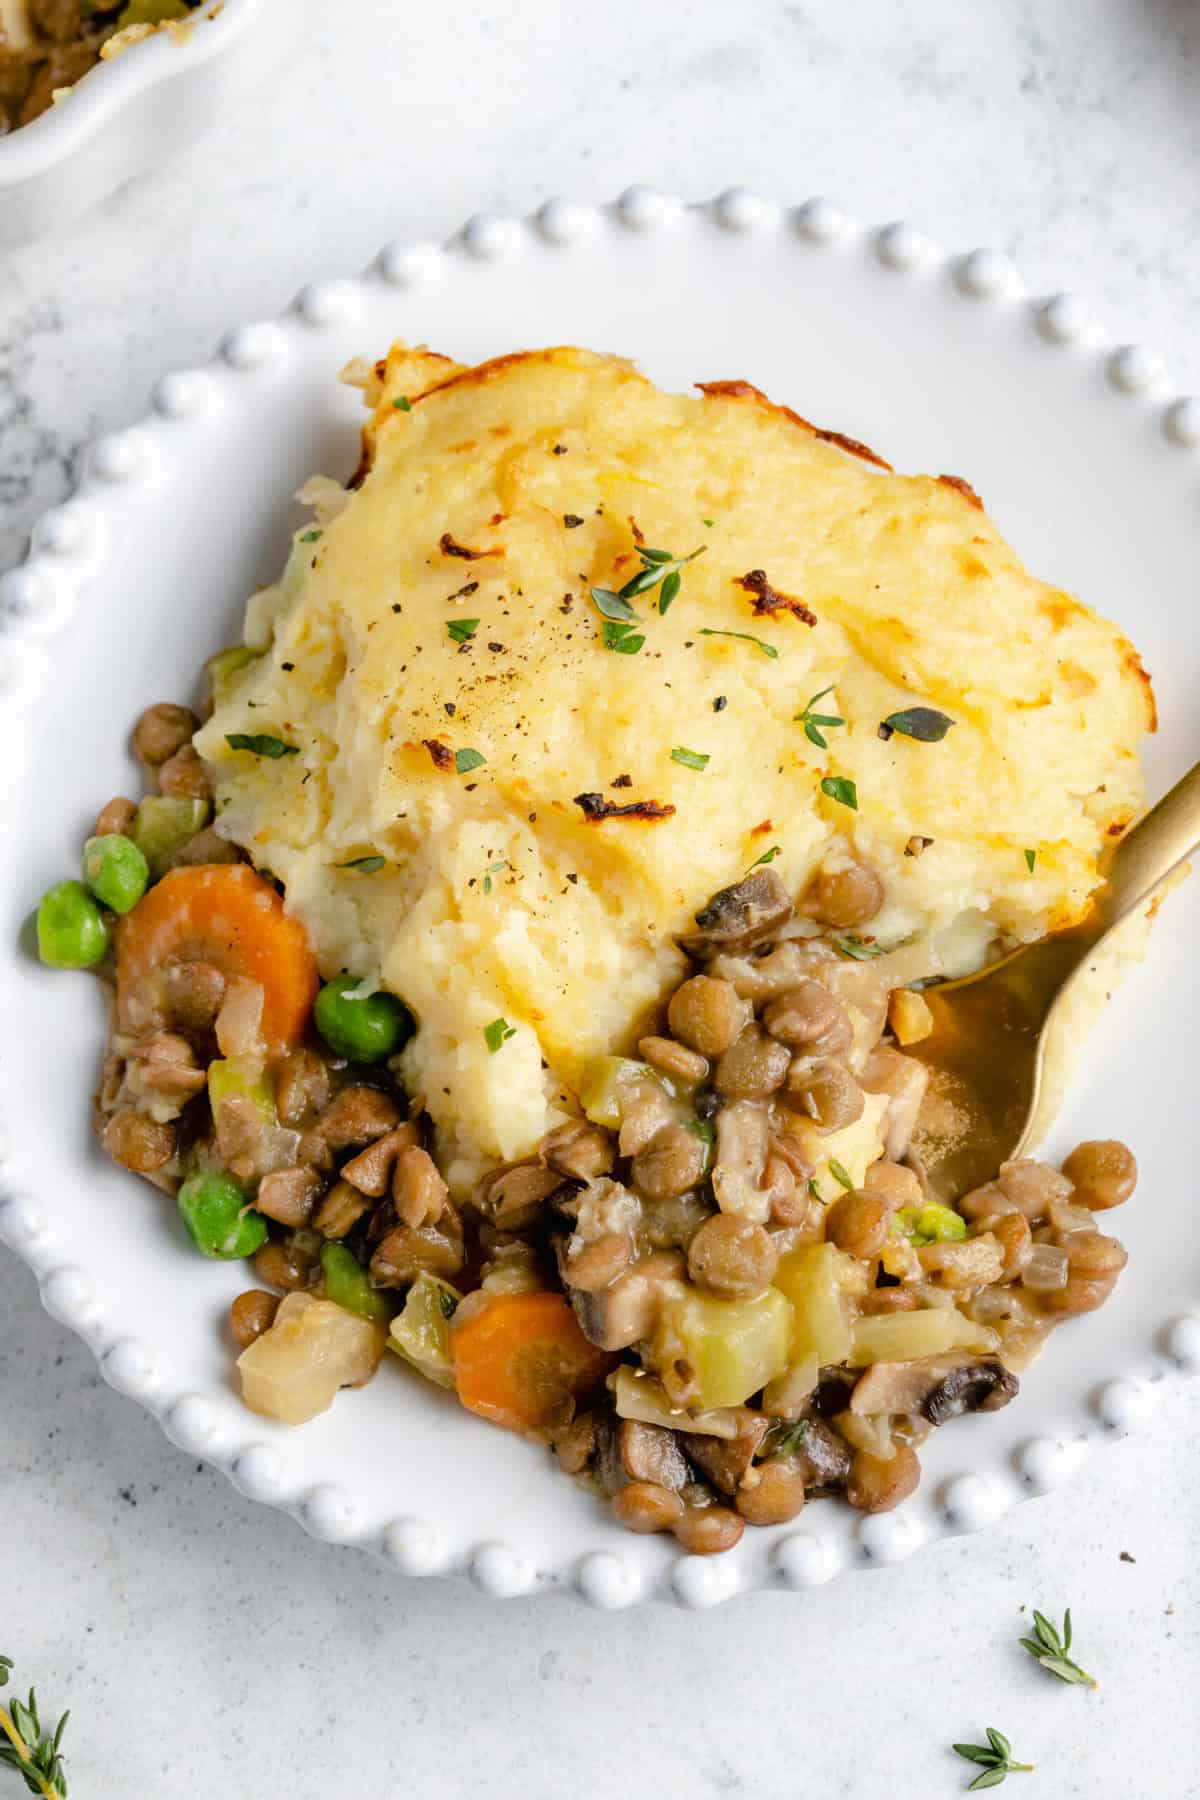 Serving of Vegan Shepherd's Pie on white plate with fork